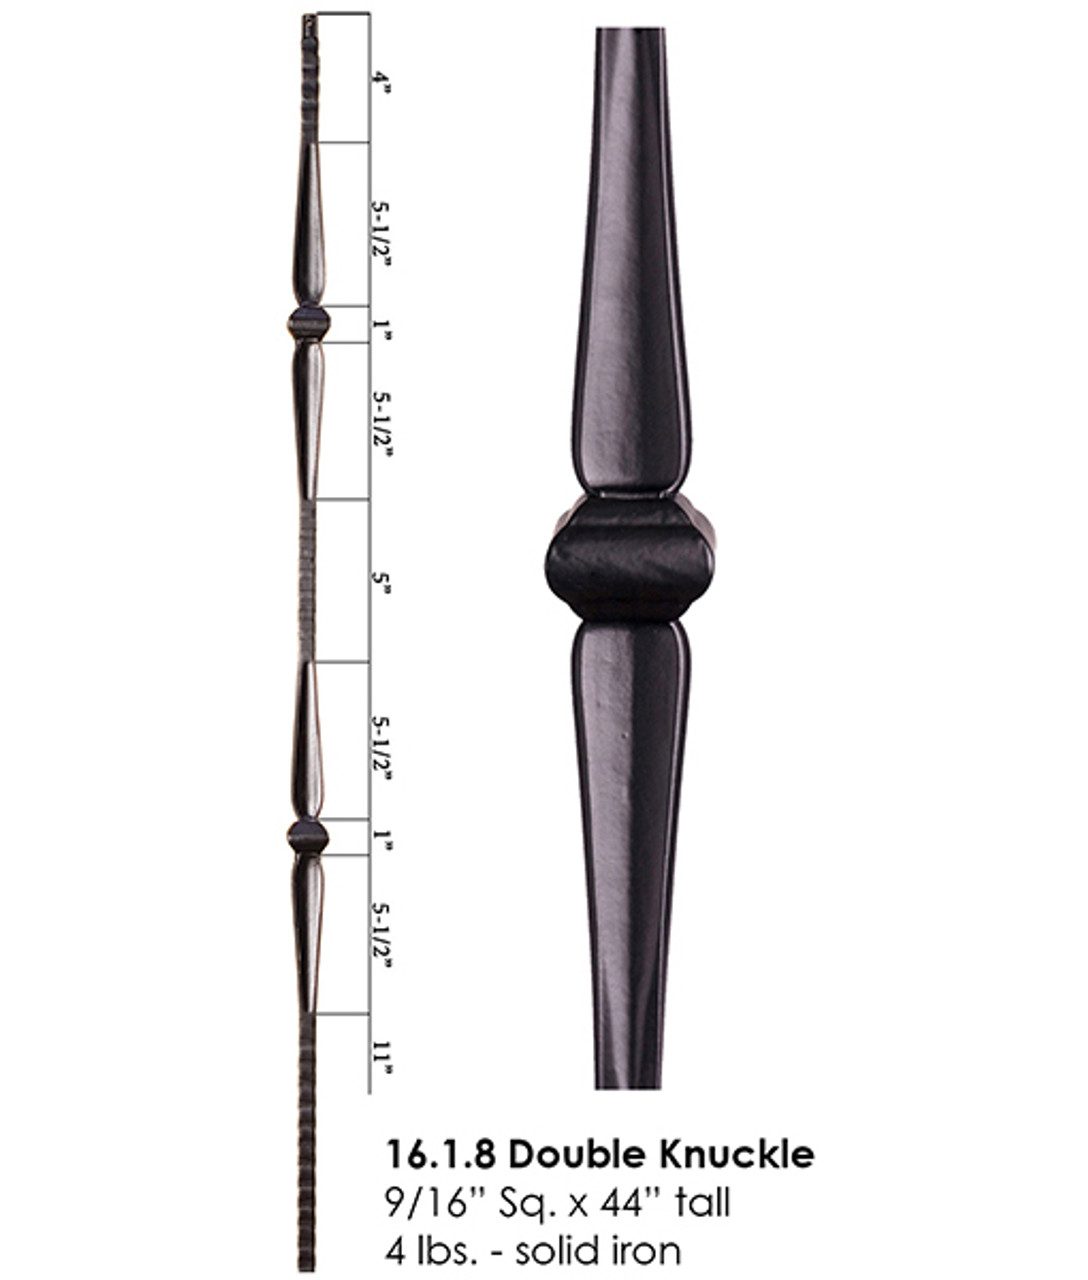 HF16.1.8 Double Knuckle Gothic Hammered Iron Baluster